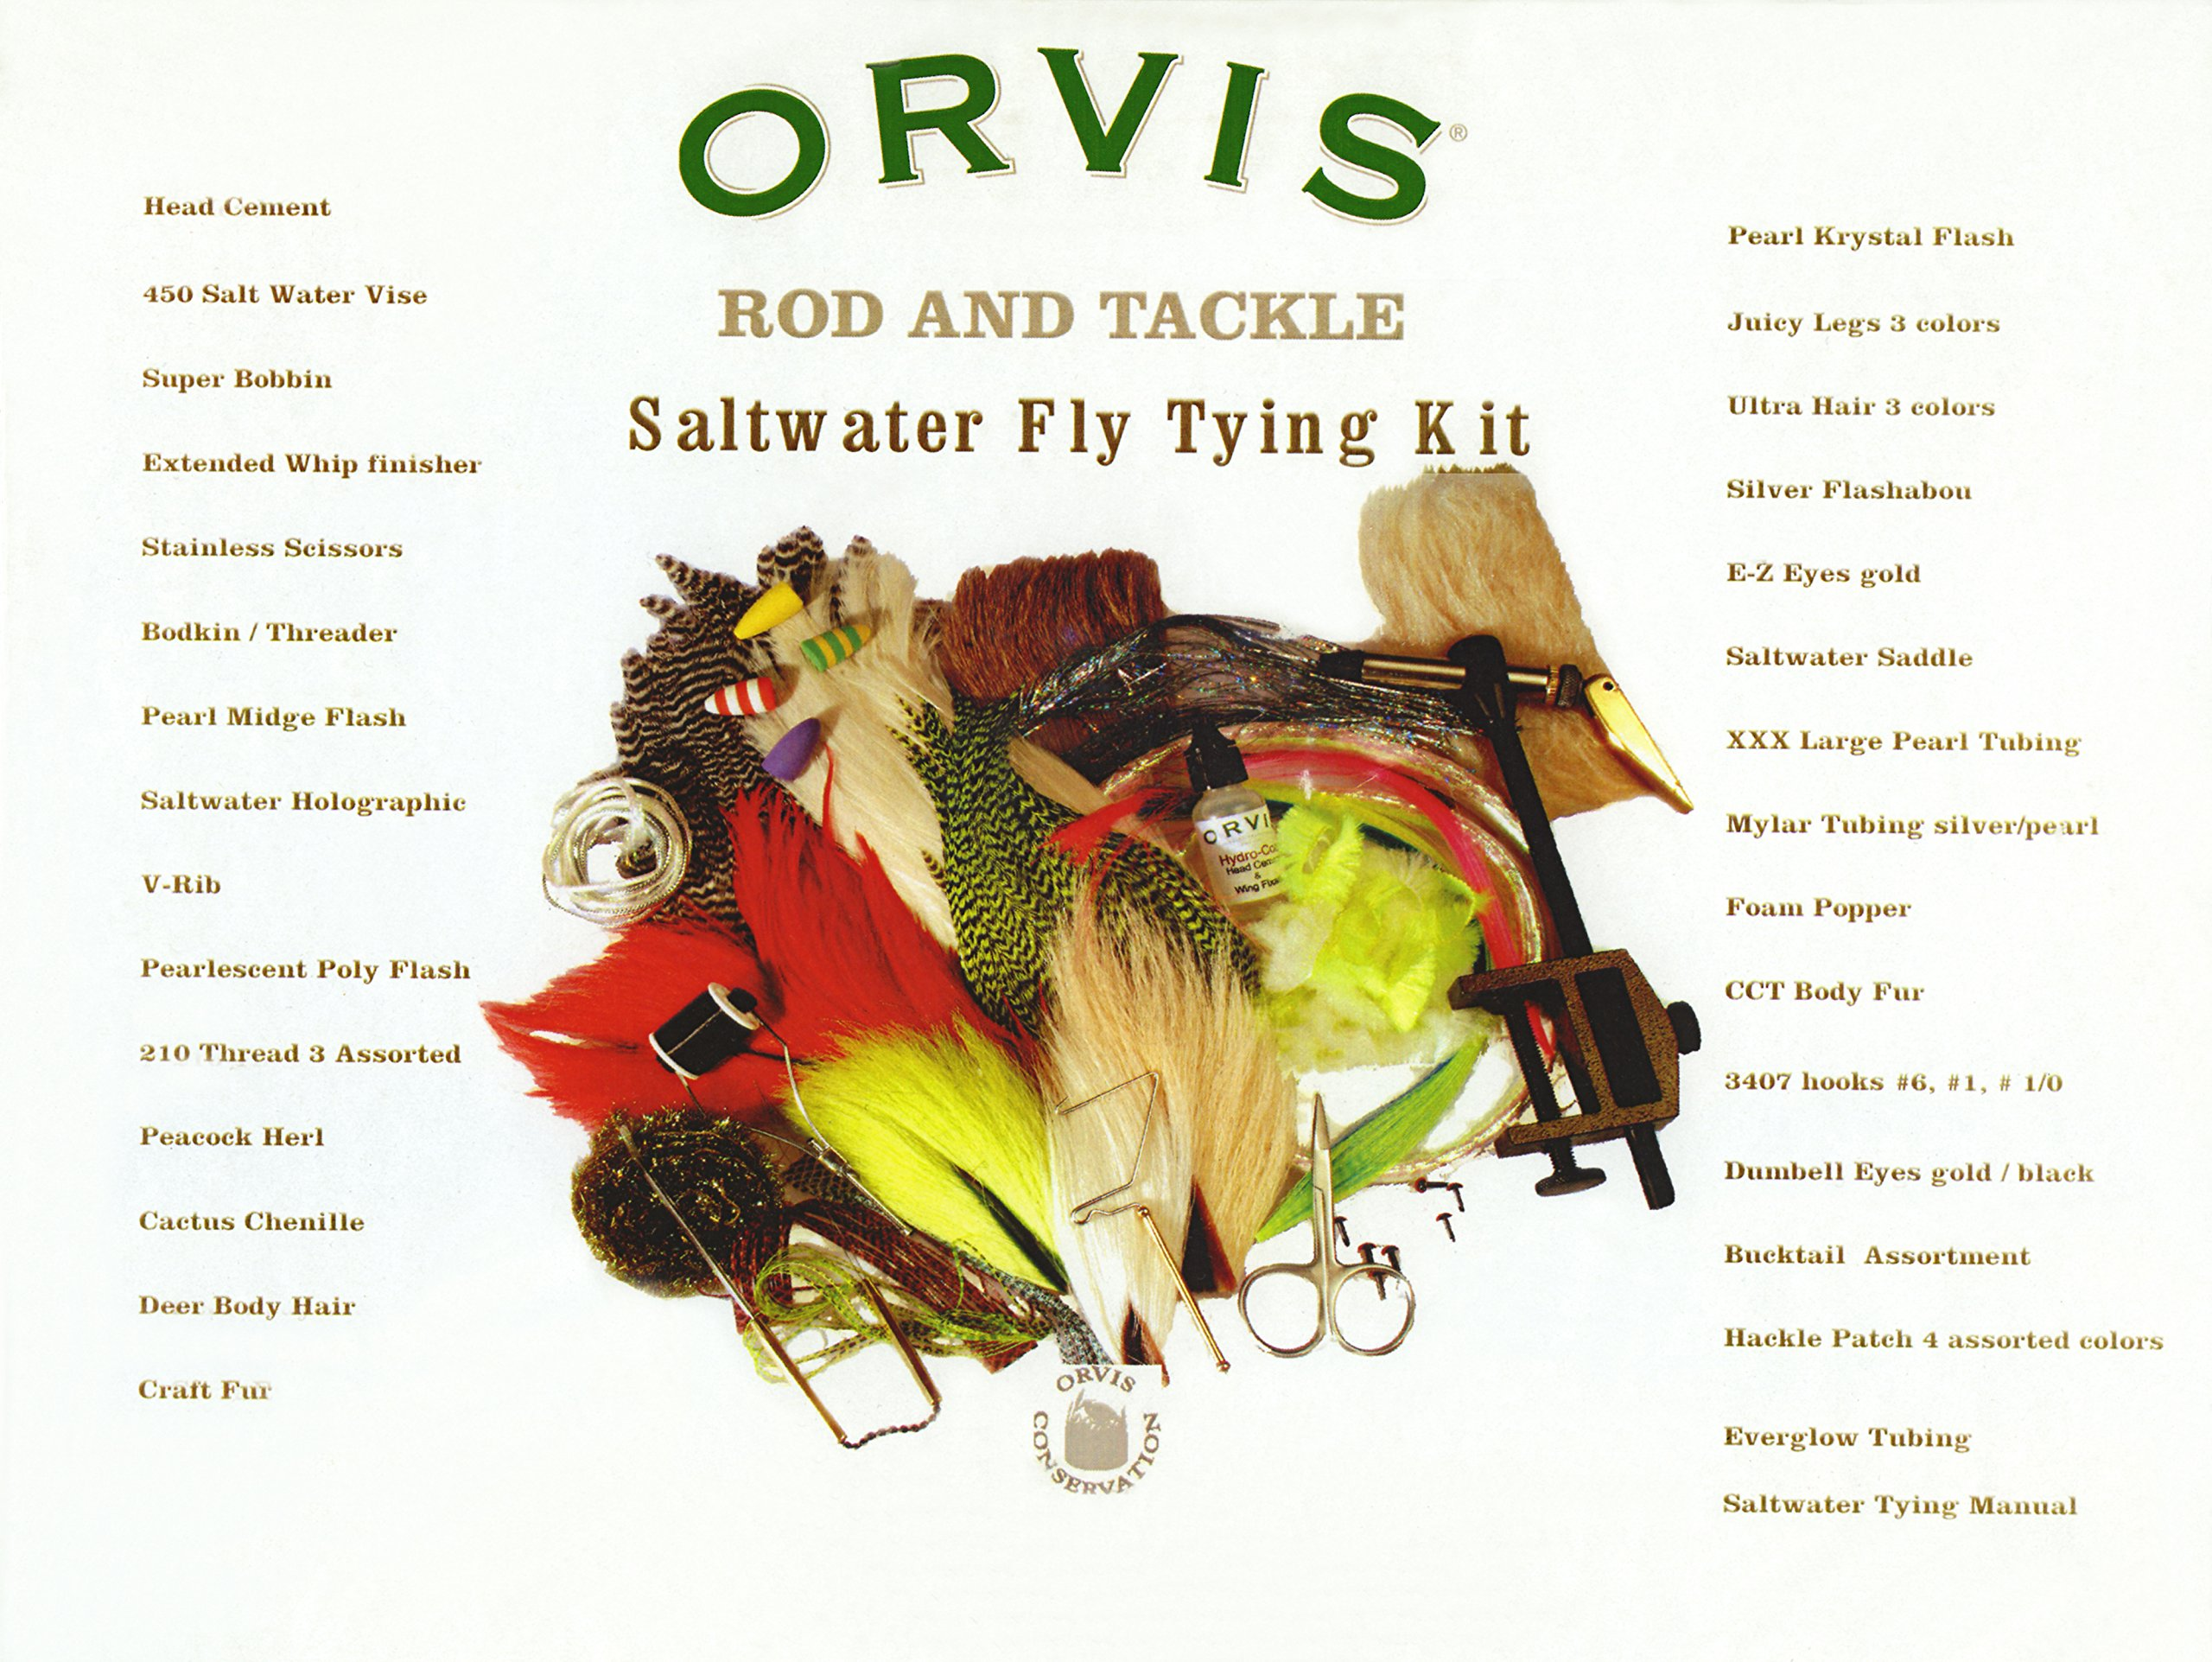 ORVIS SALTWATER FLY TYING KIT by Orvis